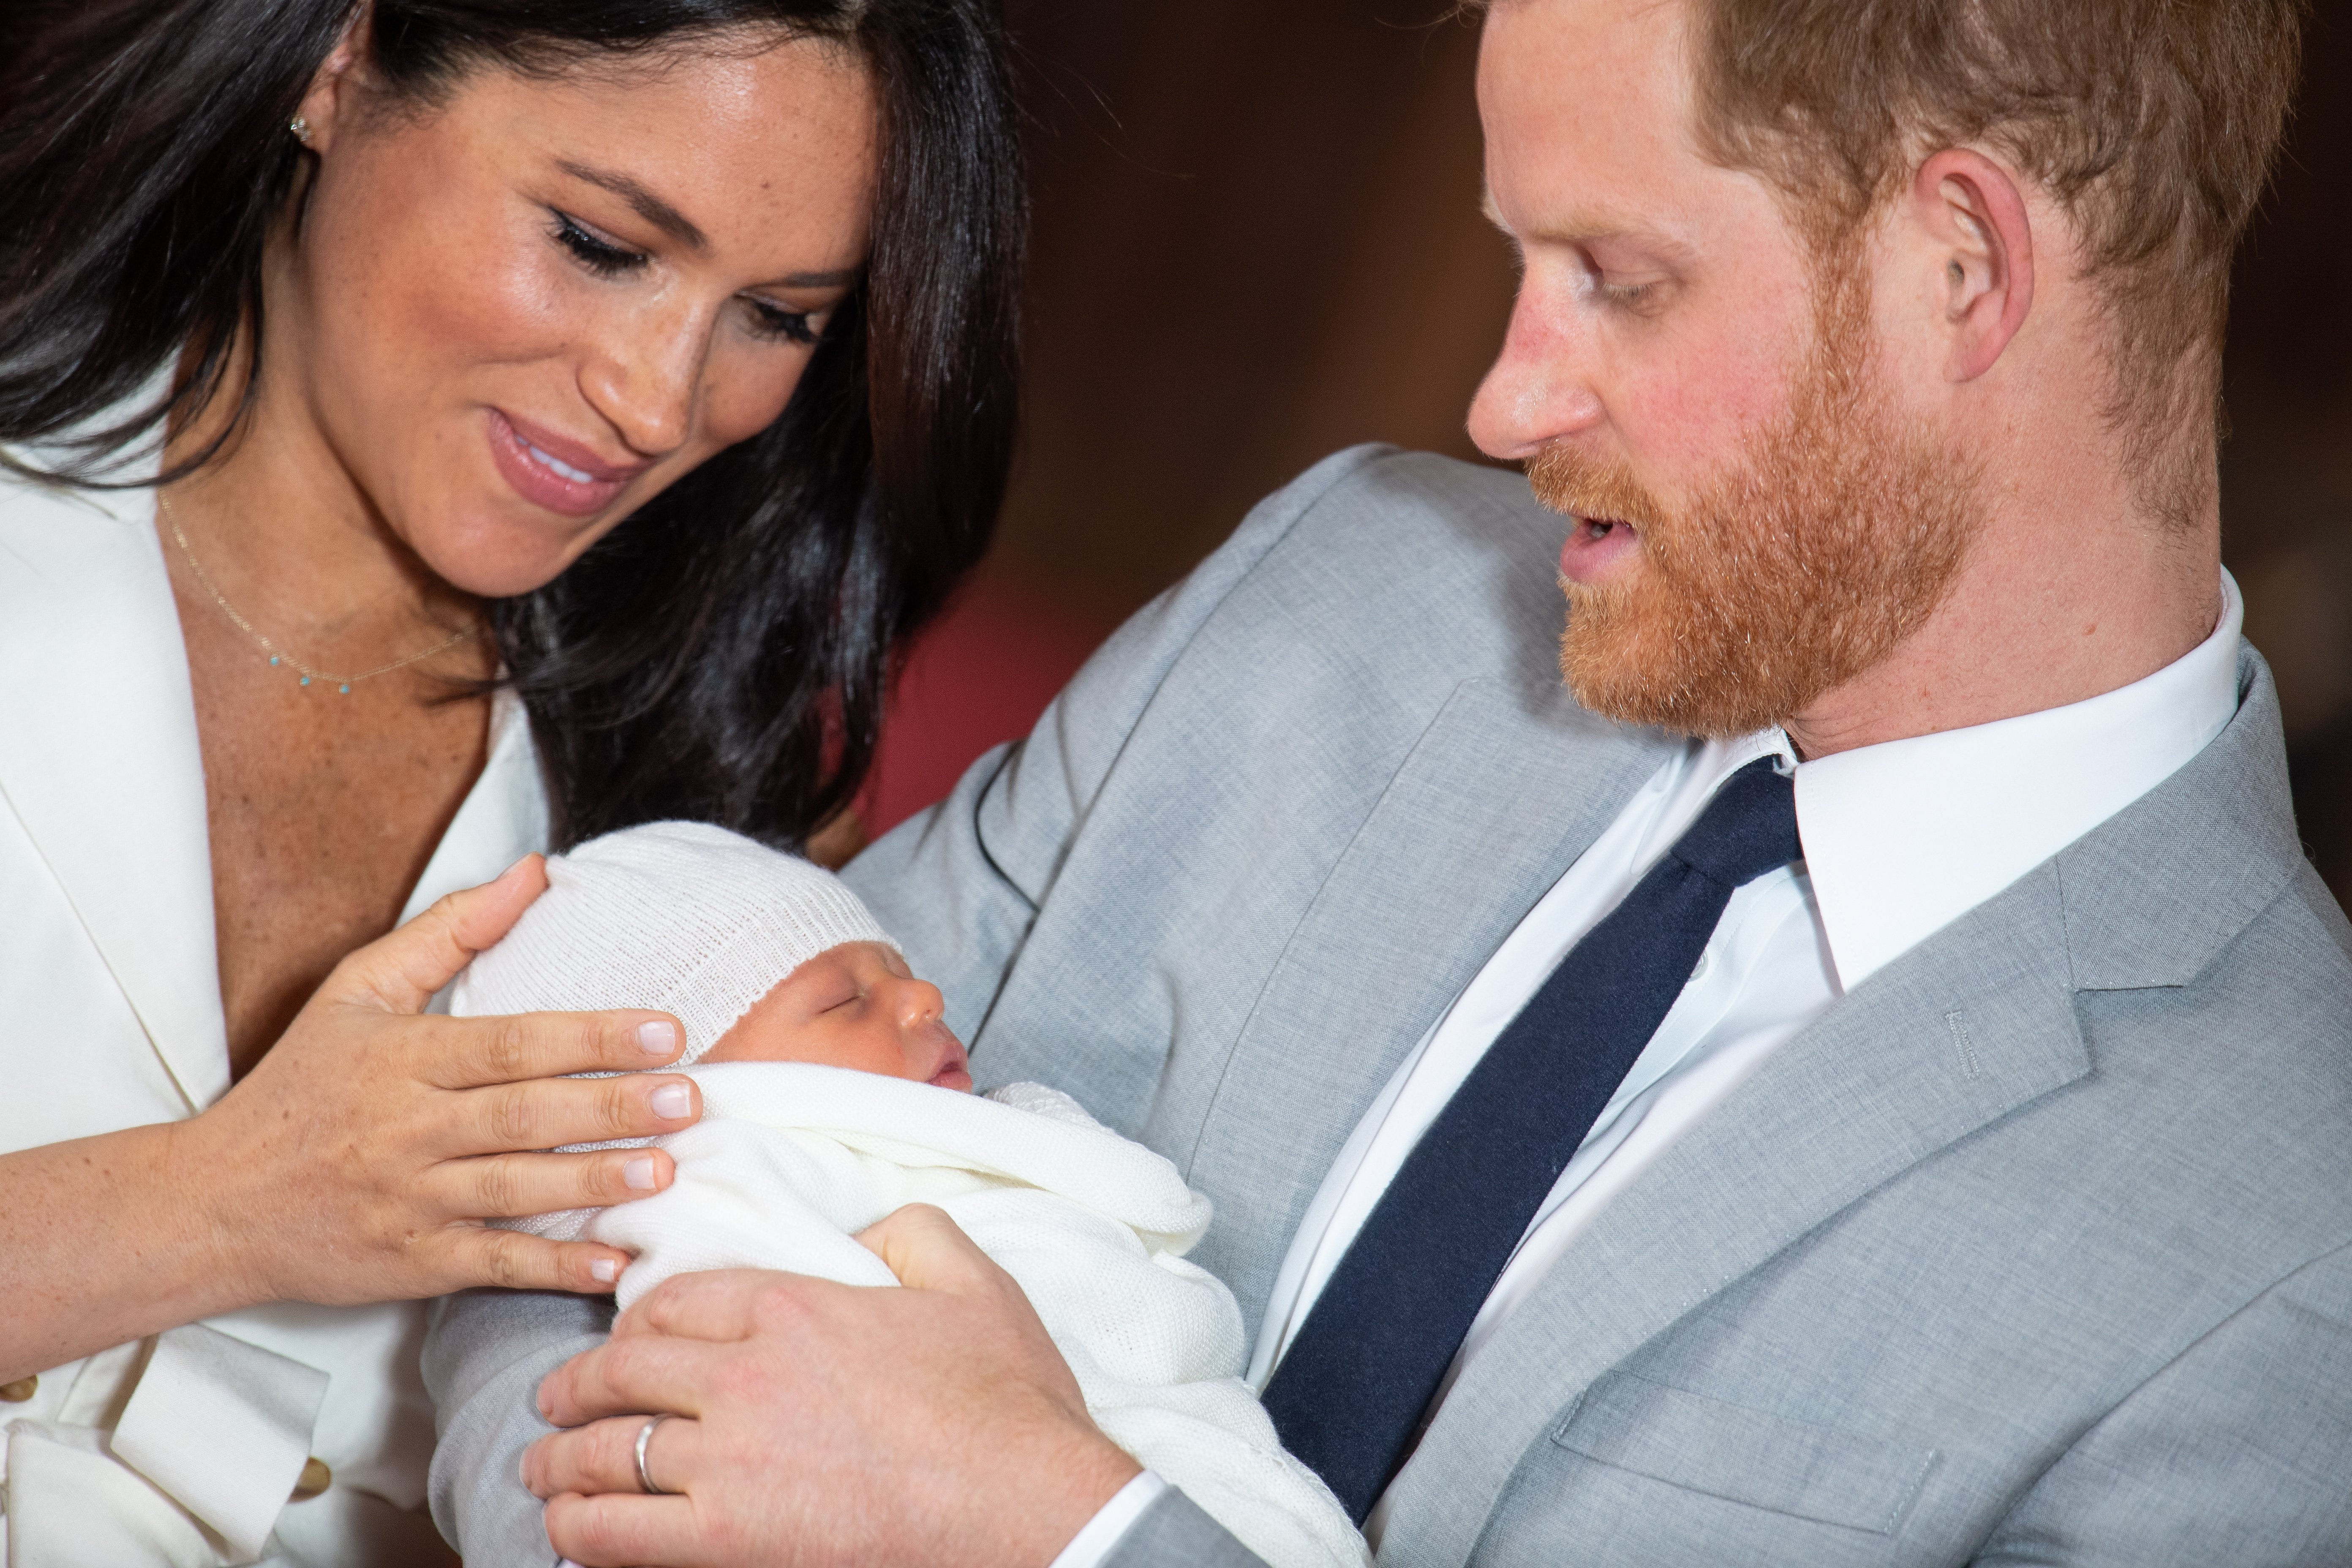 Prince Harry and Meghan Markle introduce baby Archie to the world | Photo: Getty Images